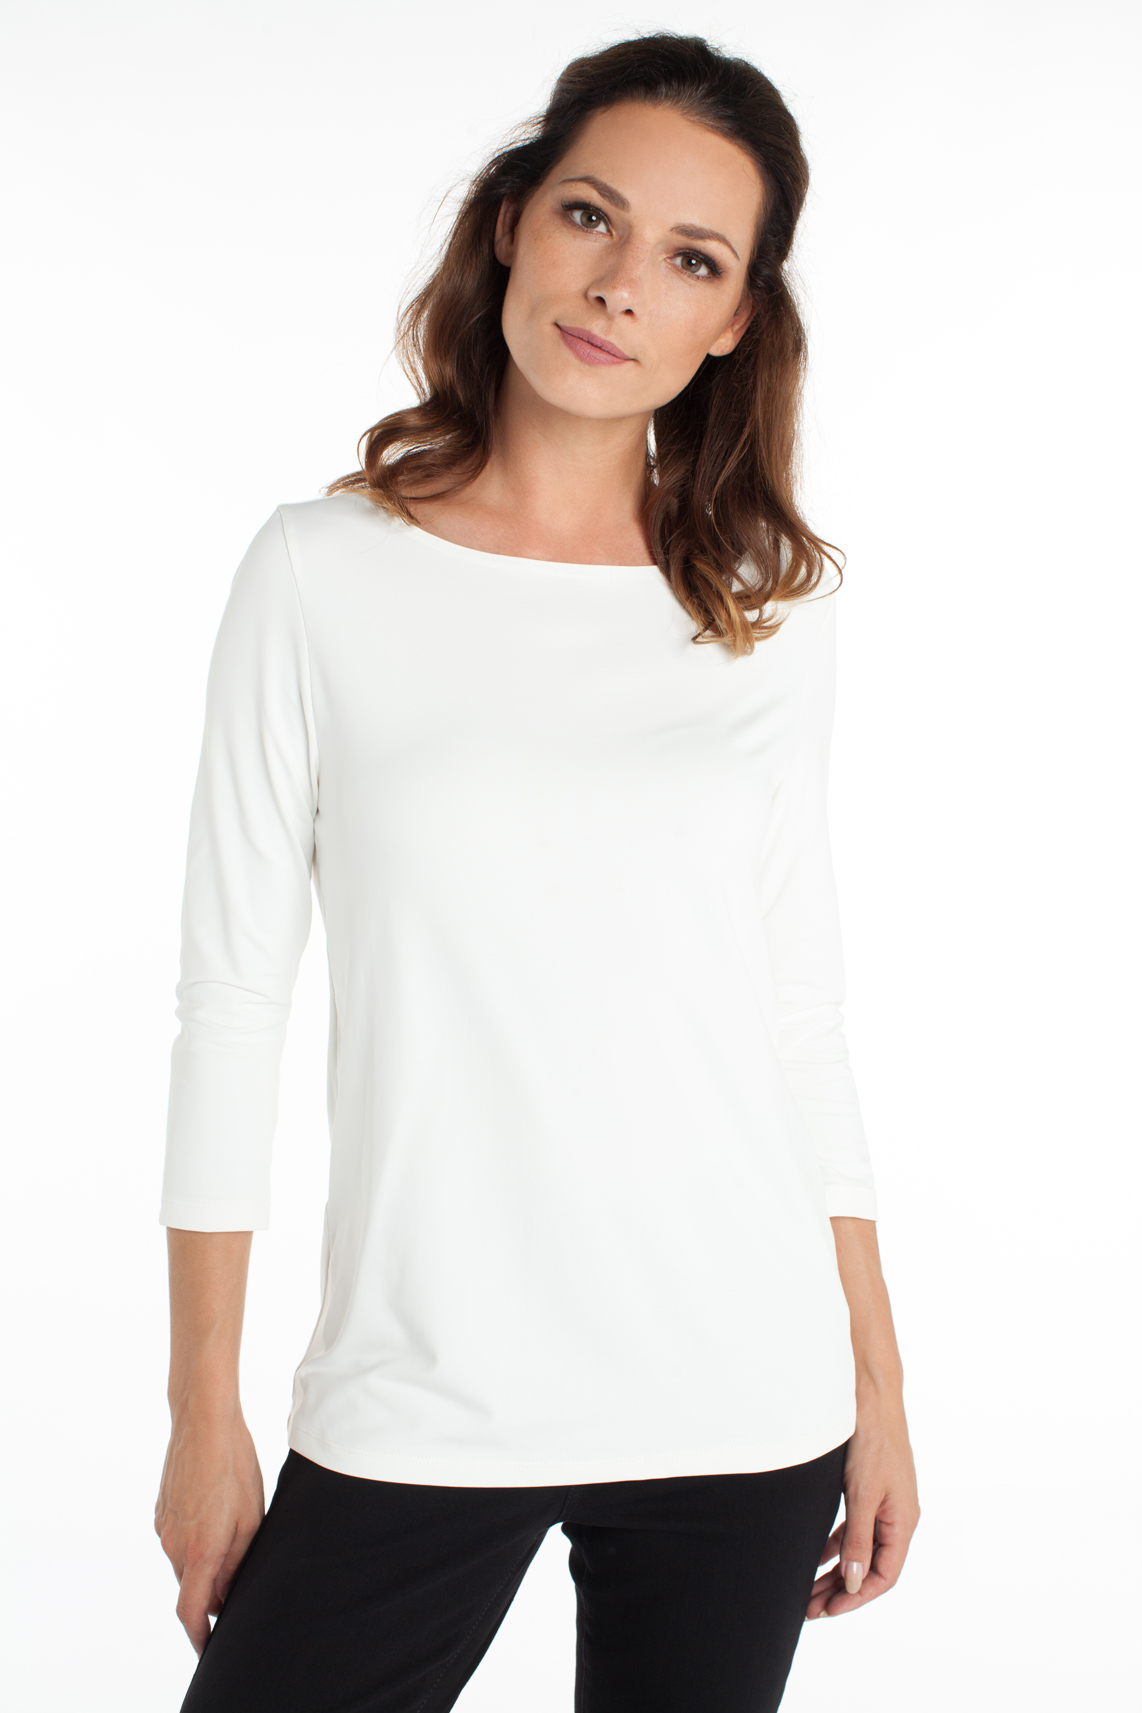 Anna Dames Seamless shirt wit